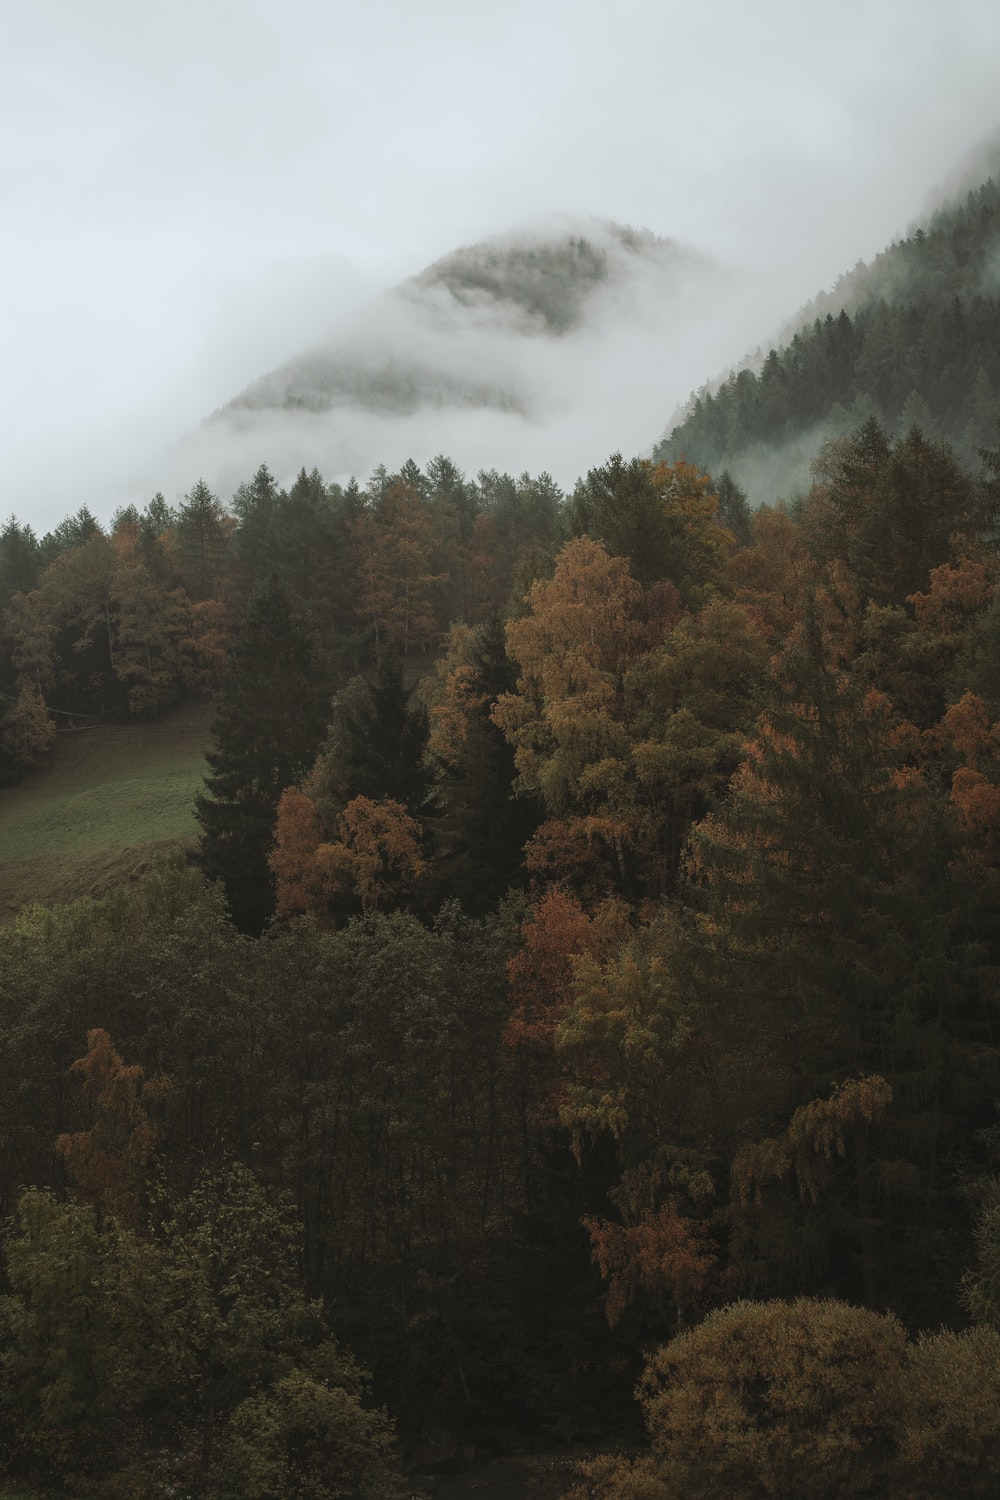 green and brown trees near mountain under white clouds during daytime